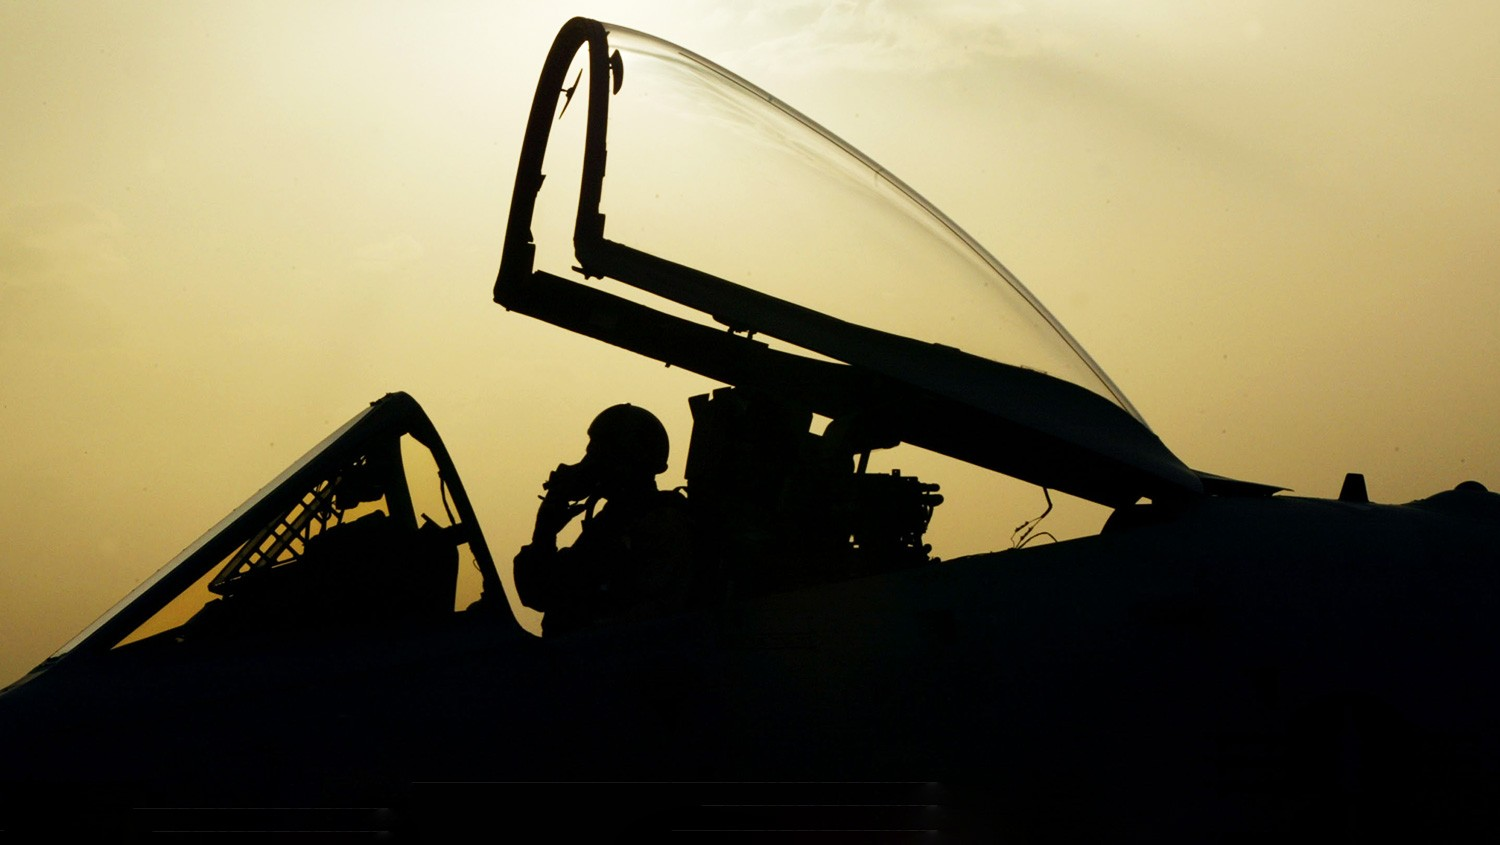 An A-10 Warthog pilot taxis on the flight line before takeoff.